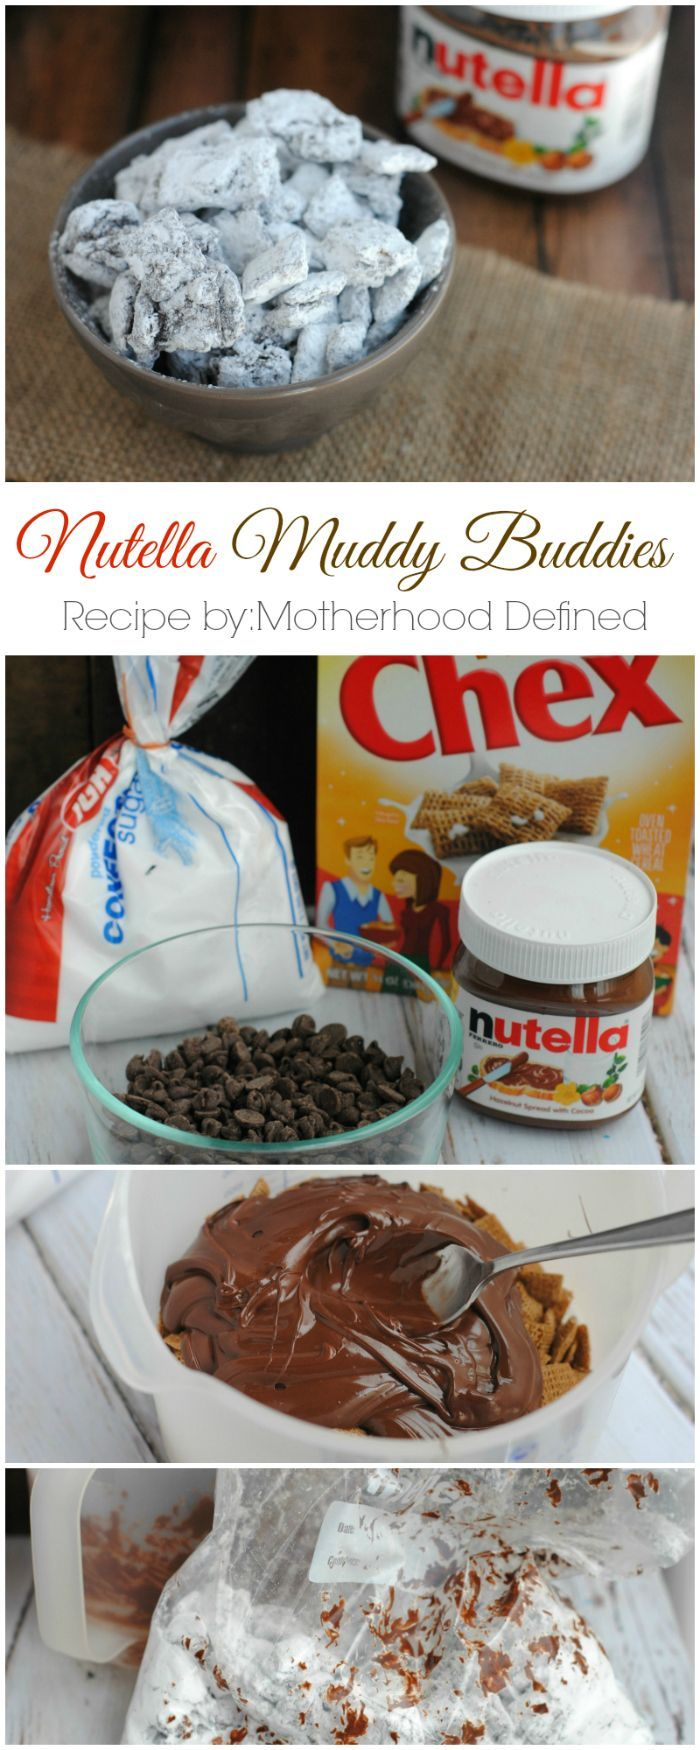 Nutella Muddy Buddies make excellent treats for snack time, sporting events and even giftables!